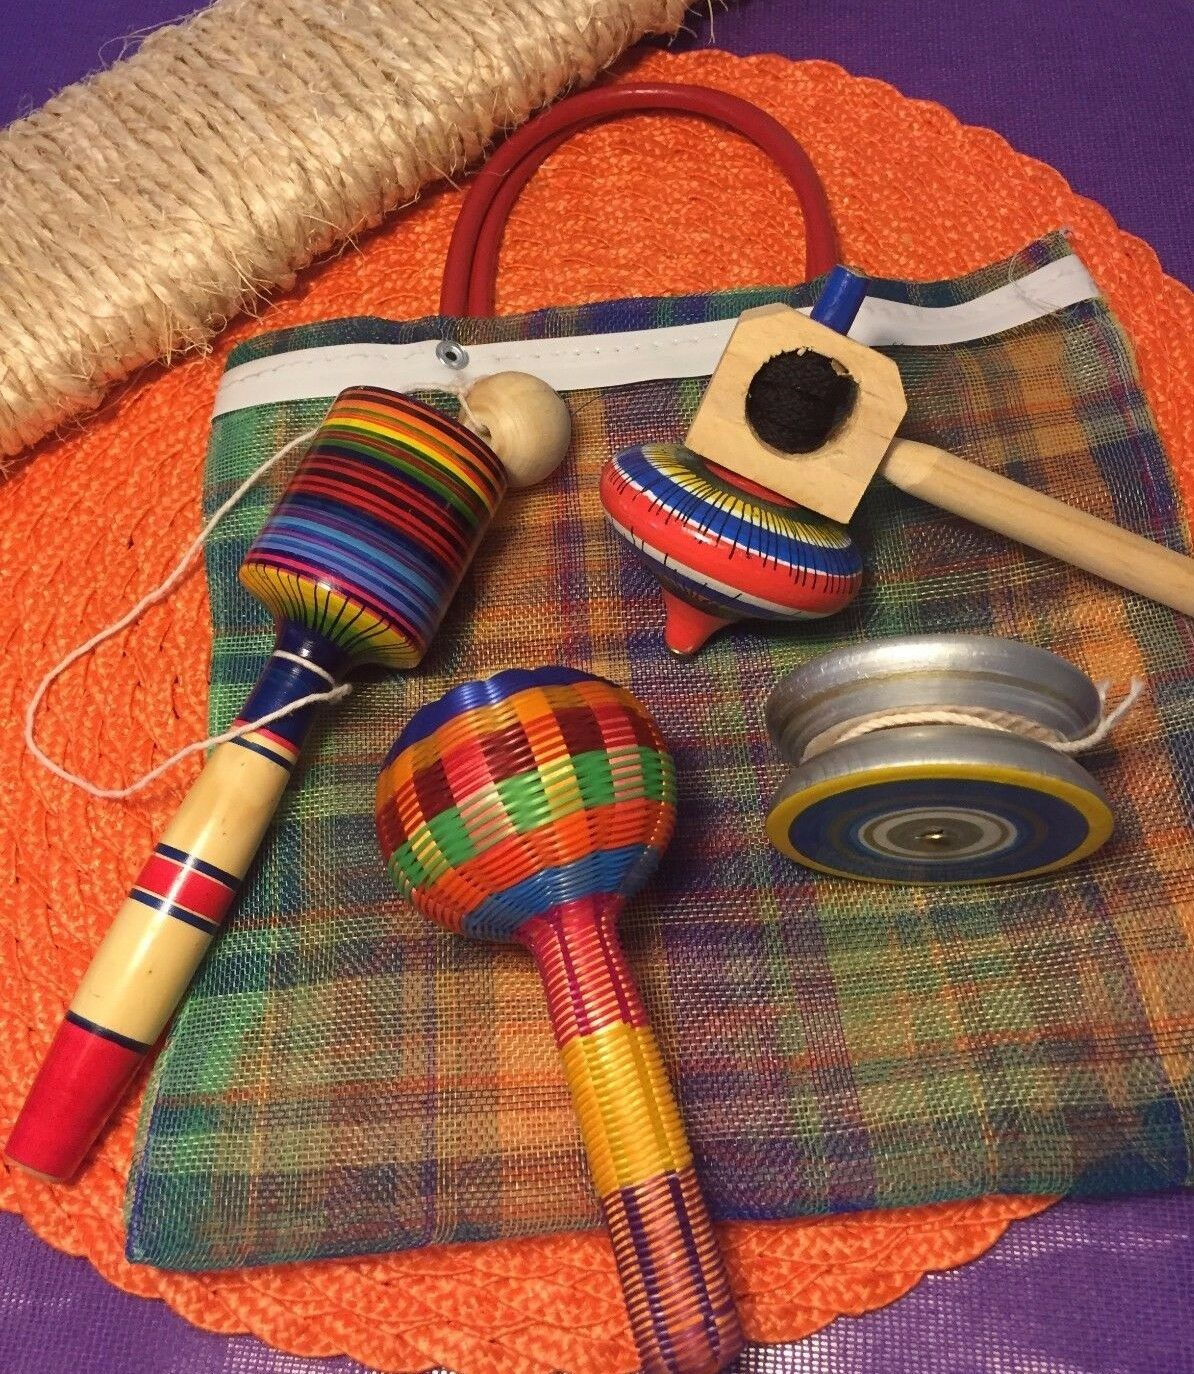 Kid Toys combo - Spinning Top  Rattle  Balero Yoyo in a handcrafted MEDIUM bag.